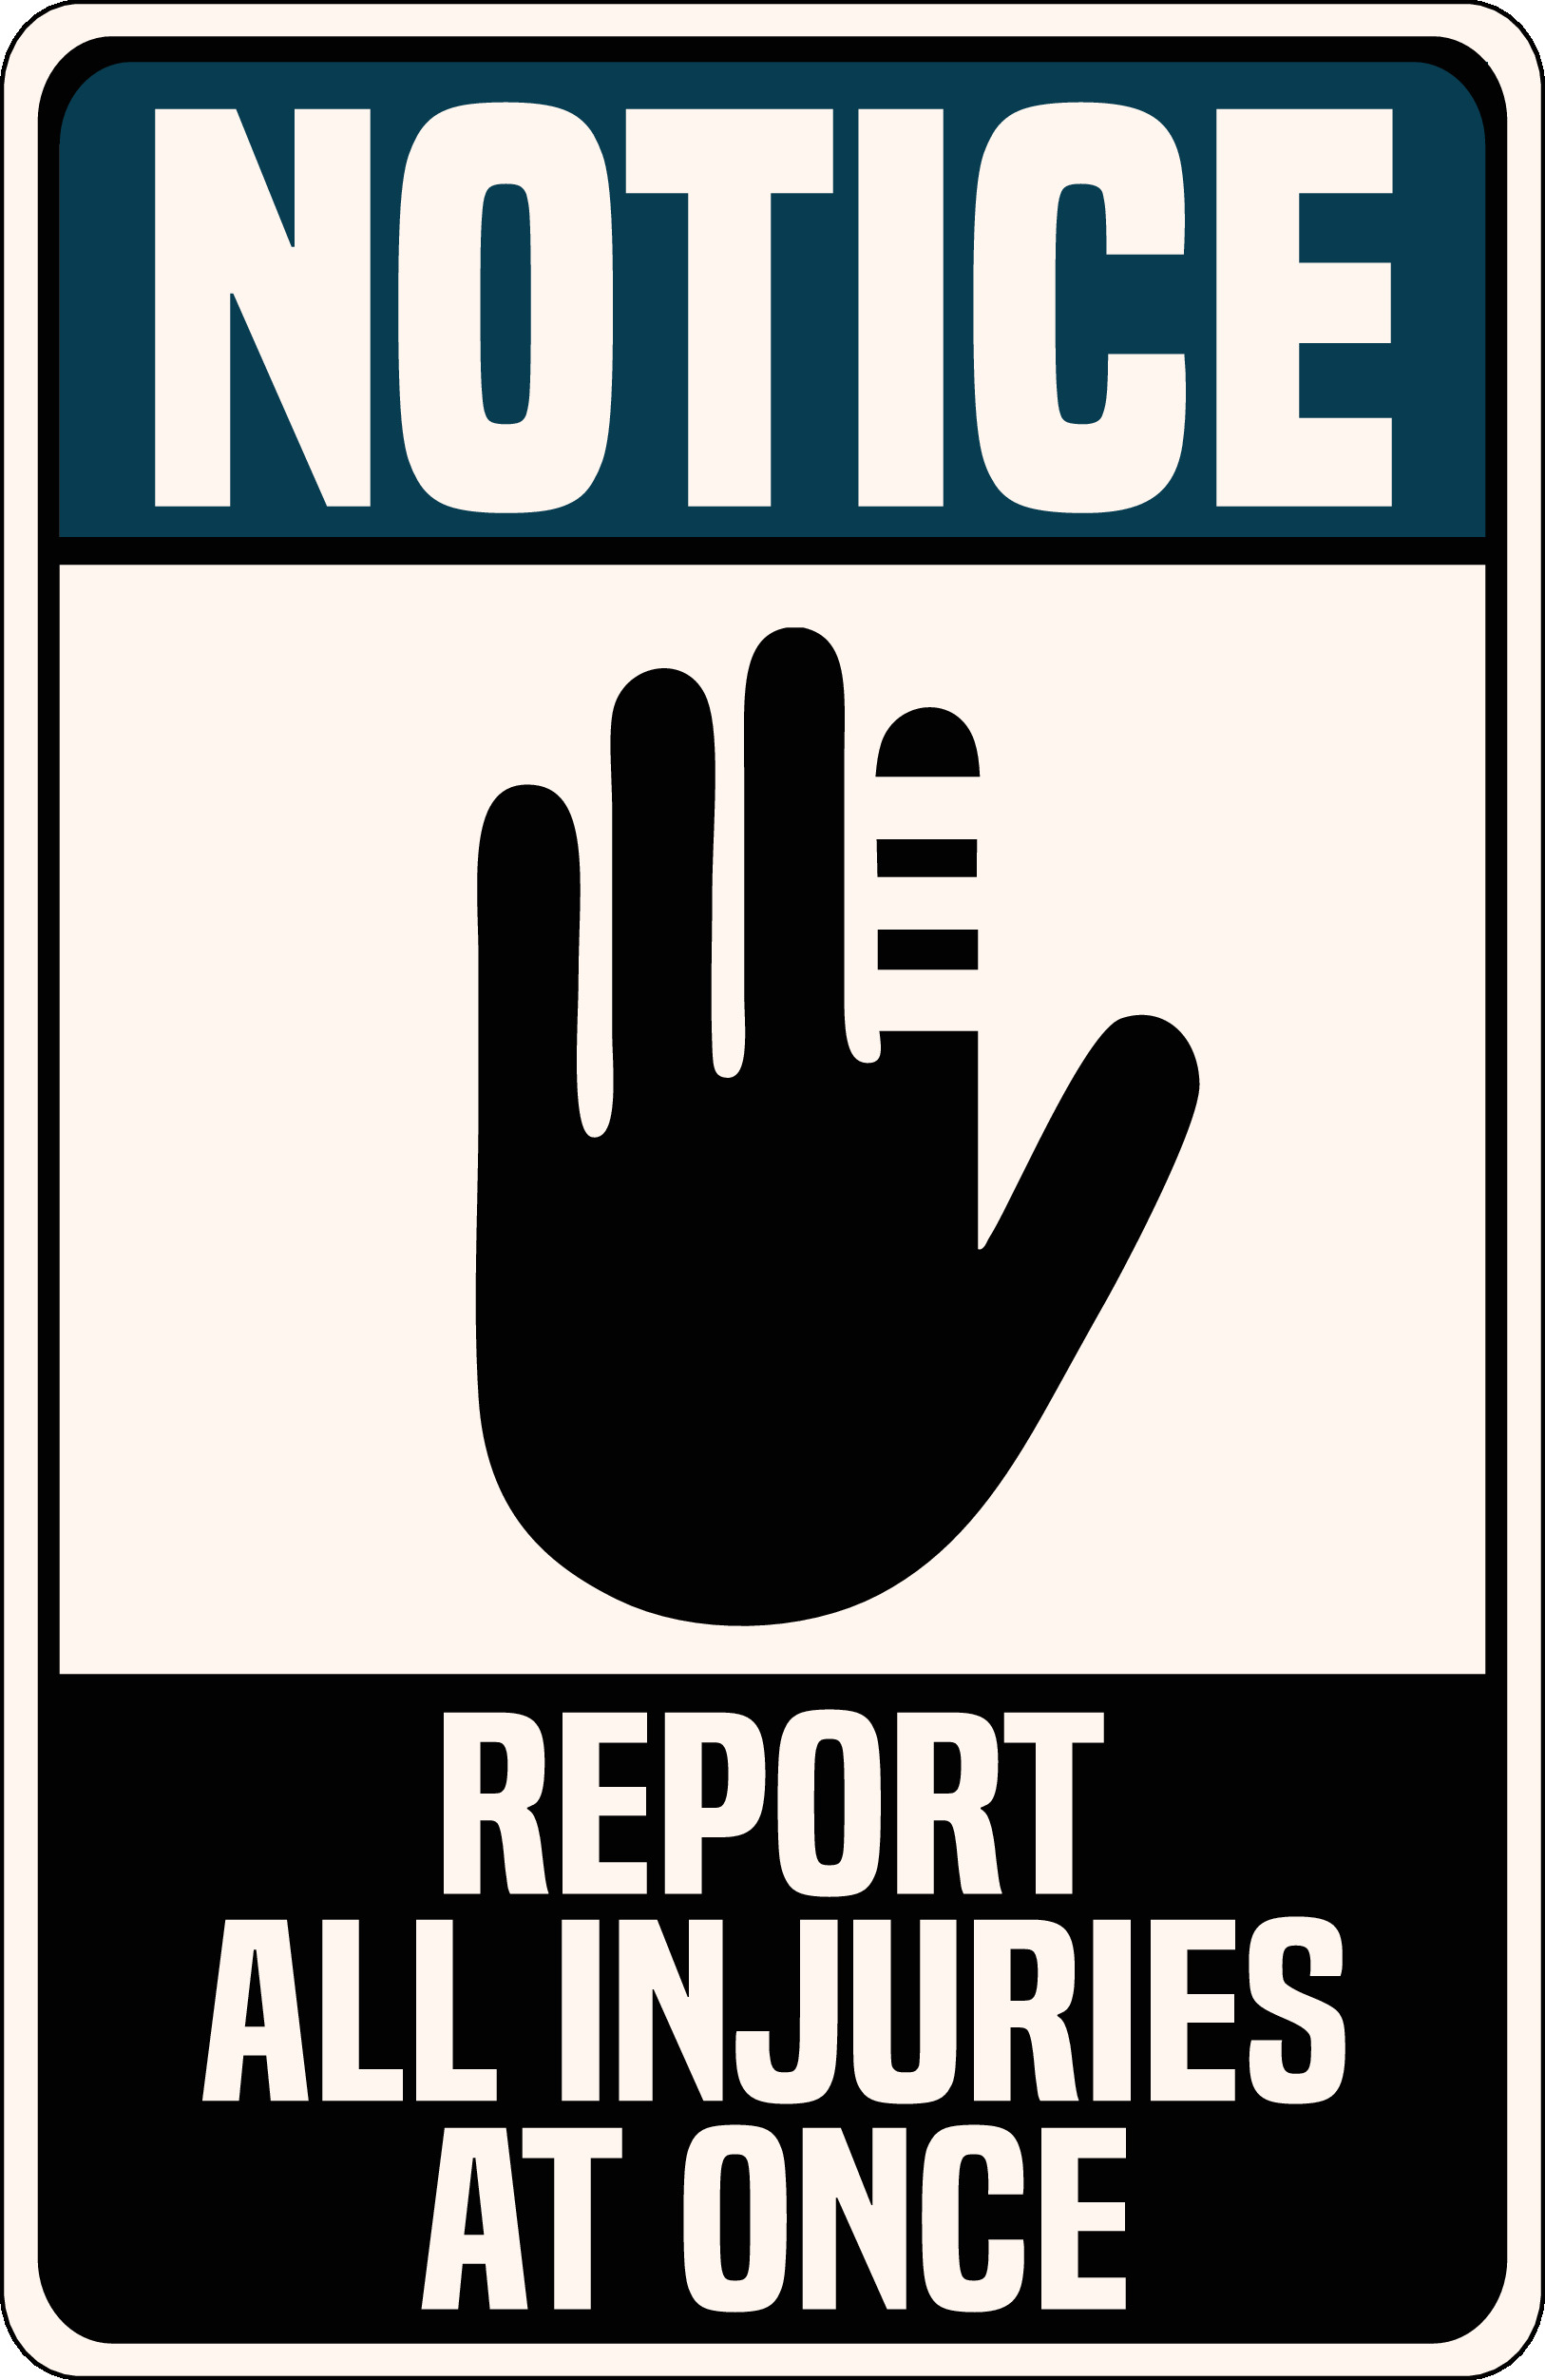 notice report all injuries at once sign